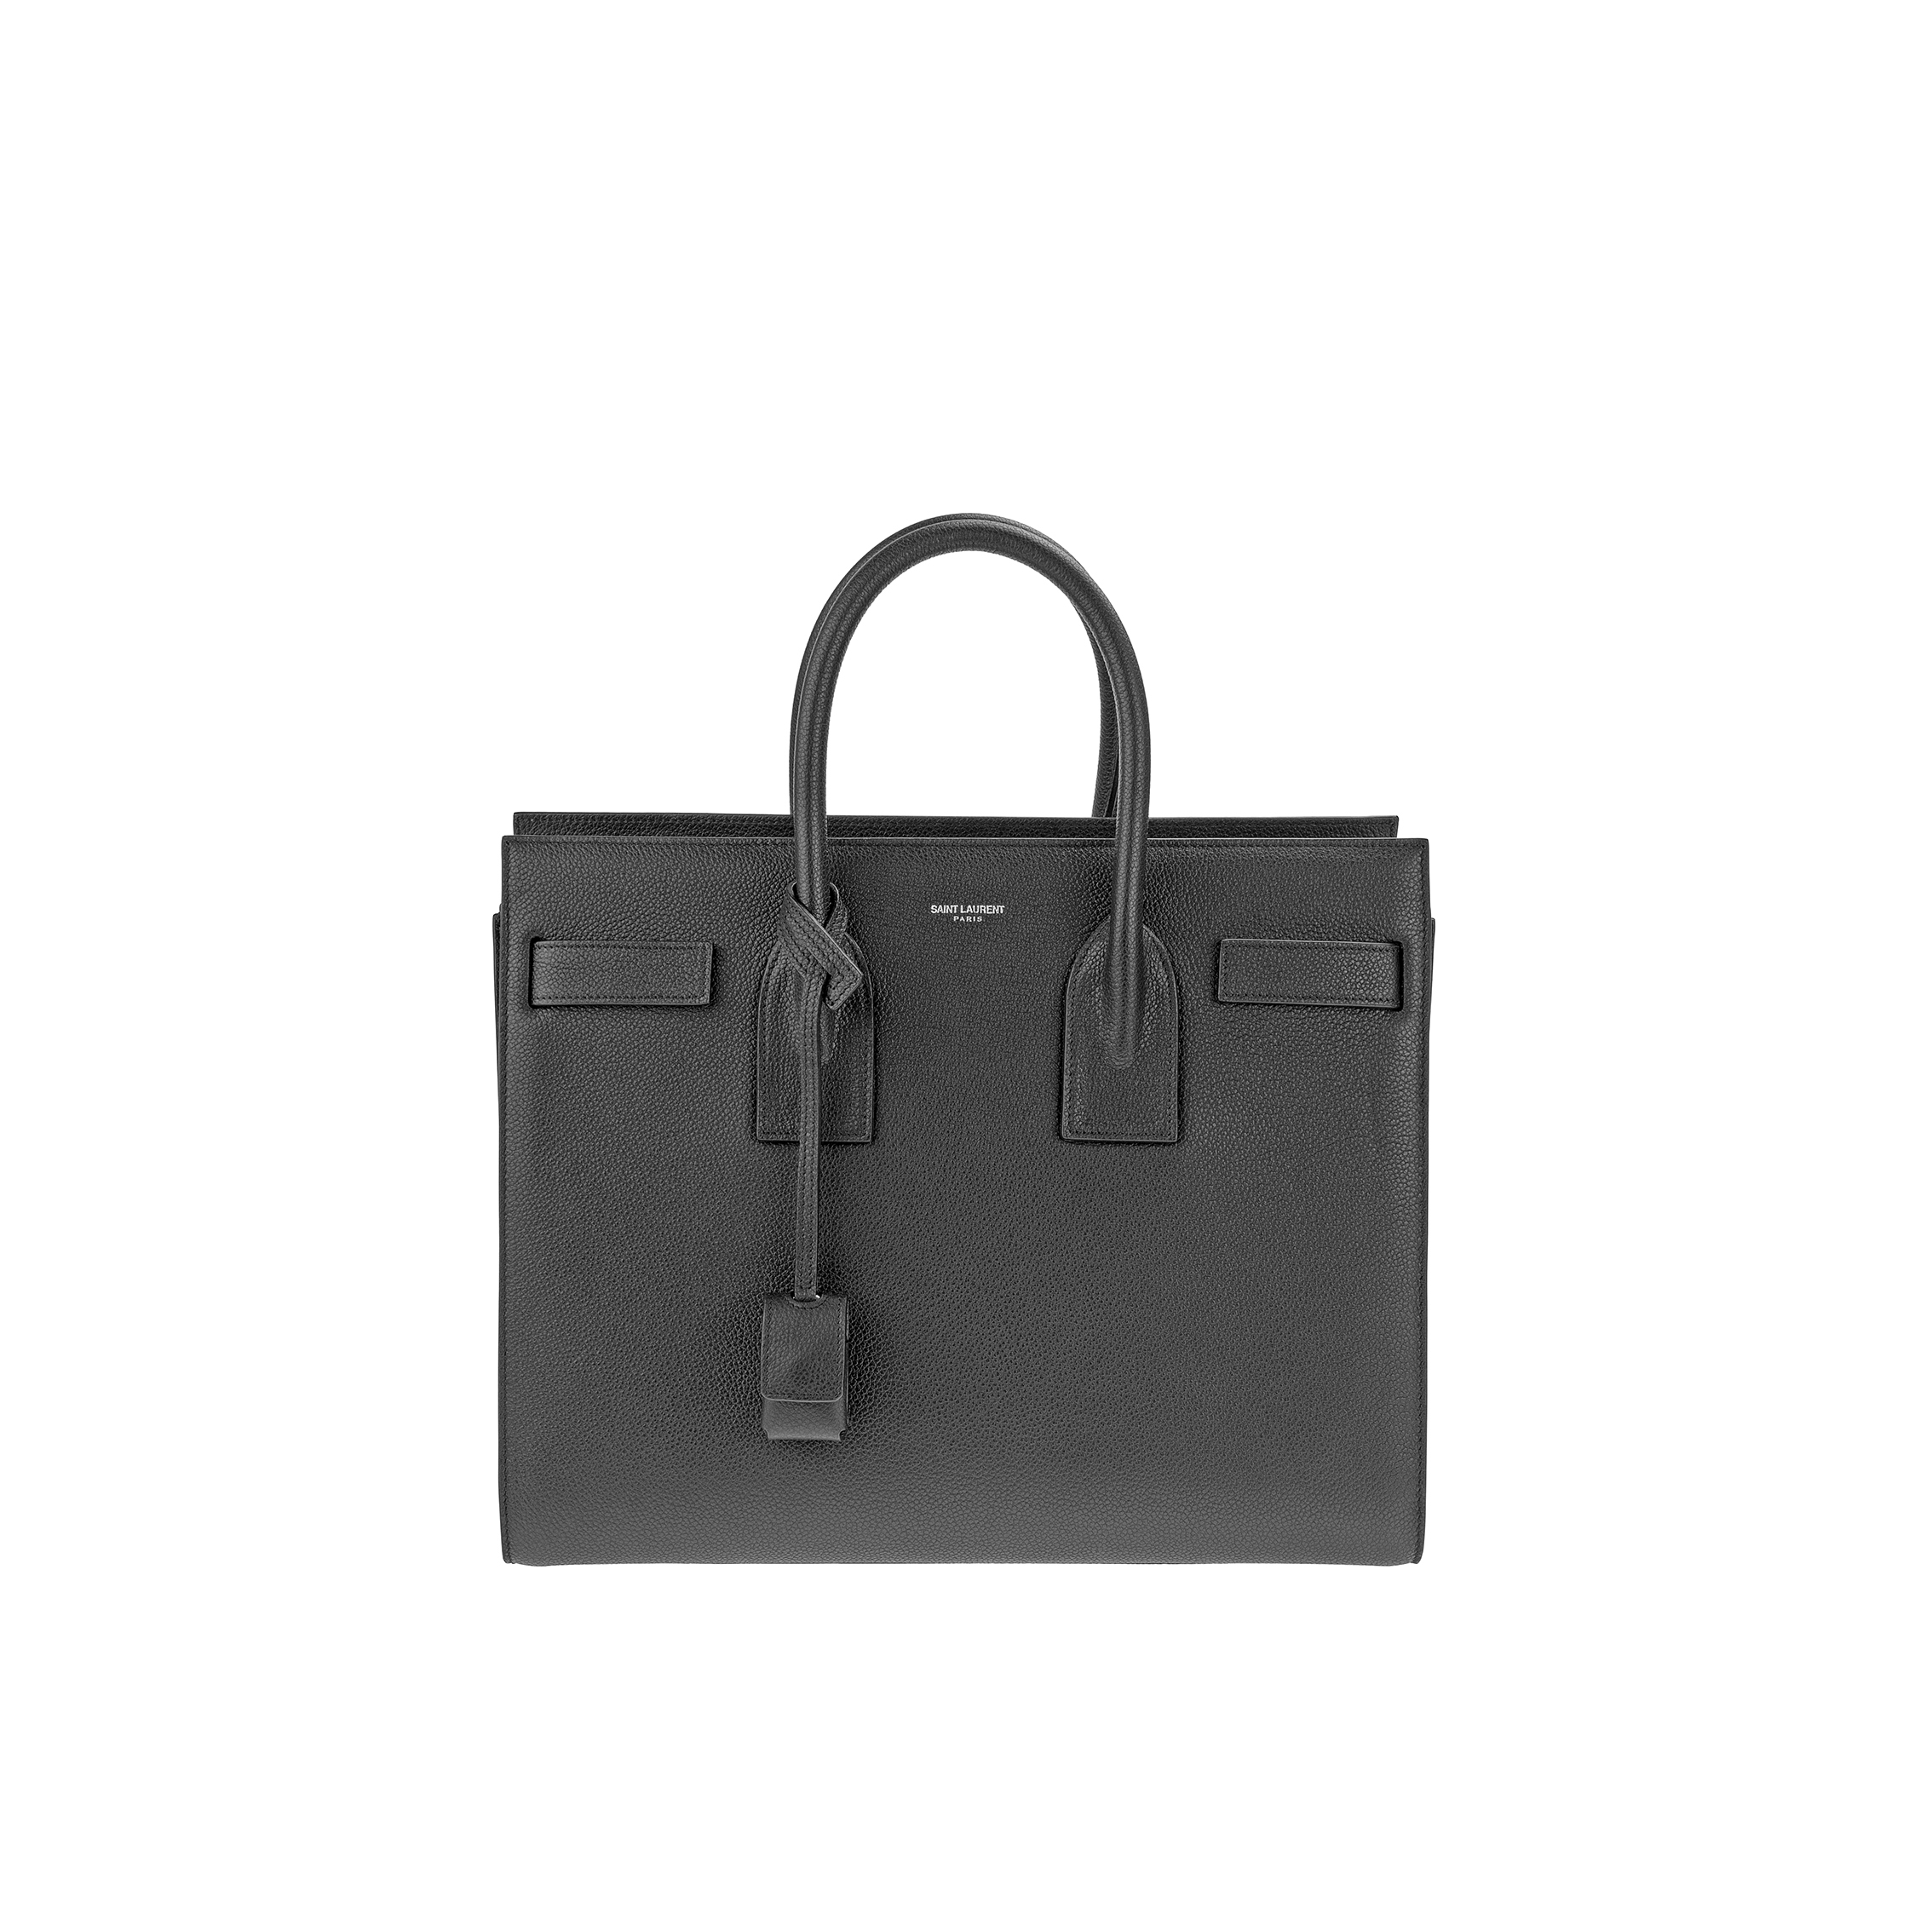 sac louer yves saint laurent rent fashion bag. Black Bedroom Furniture Sets. Home Design Ideas